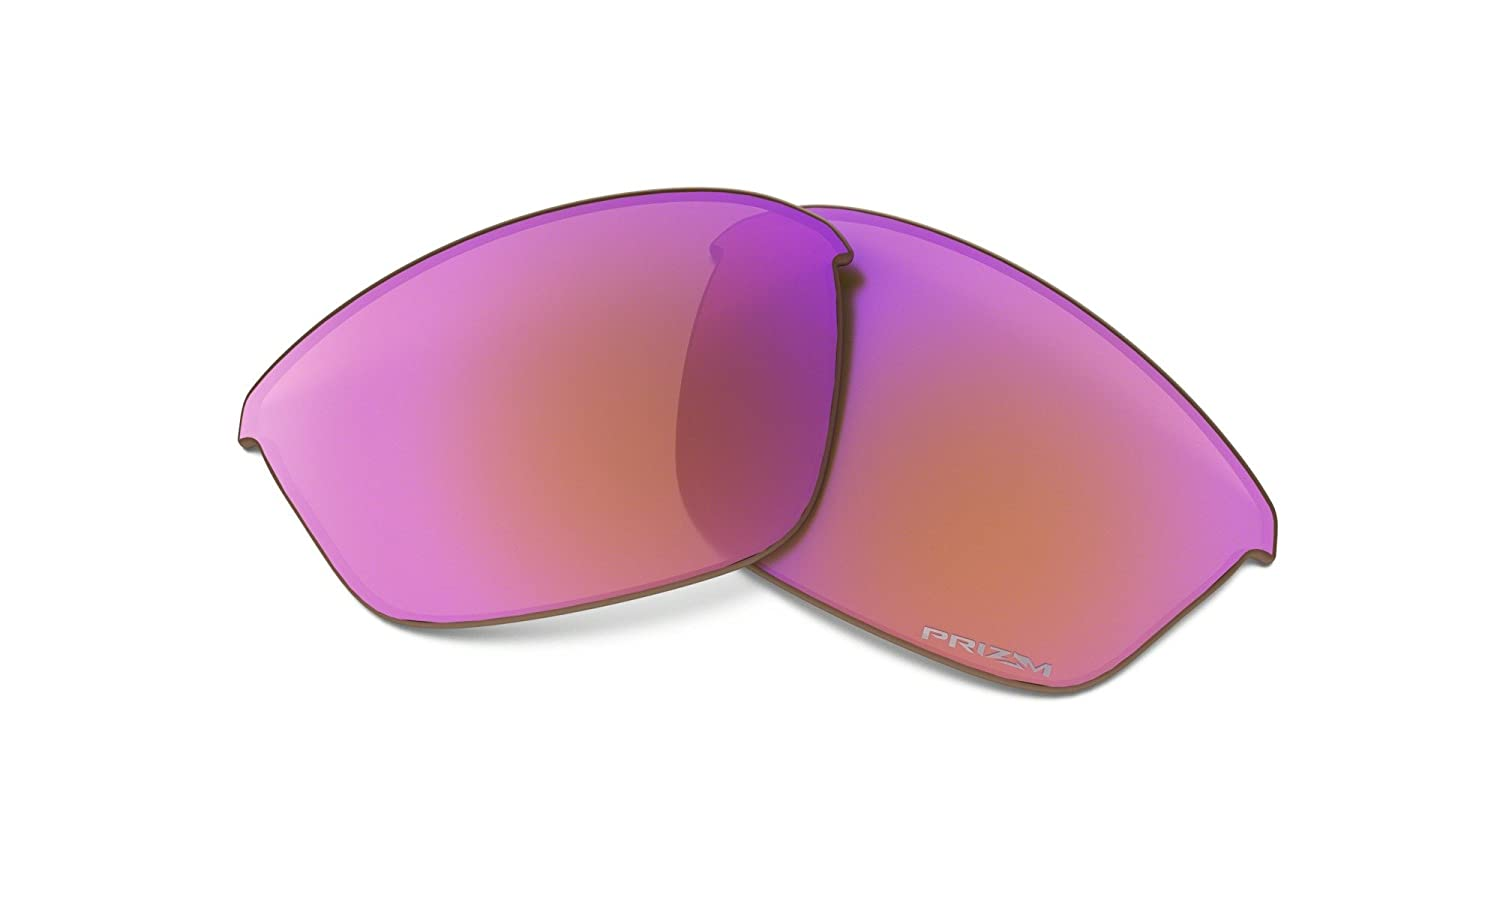 3f1bc5b901b3 Oakley Lens HALF JACKET 2.0 Authentic Replacement Lens Kit for Sunglasses:  Amazon.co.uk: Shoes & Bags